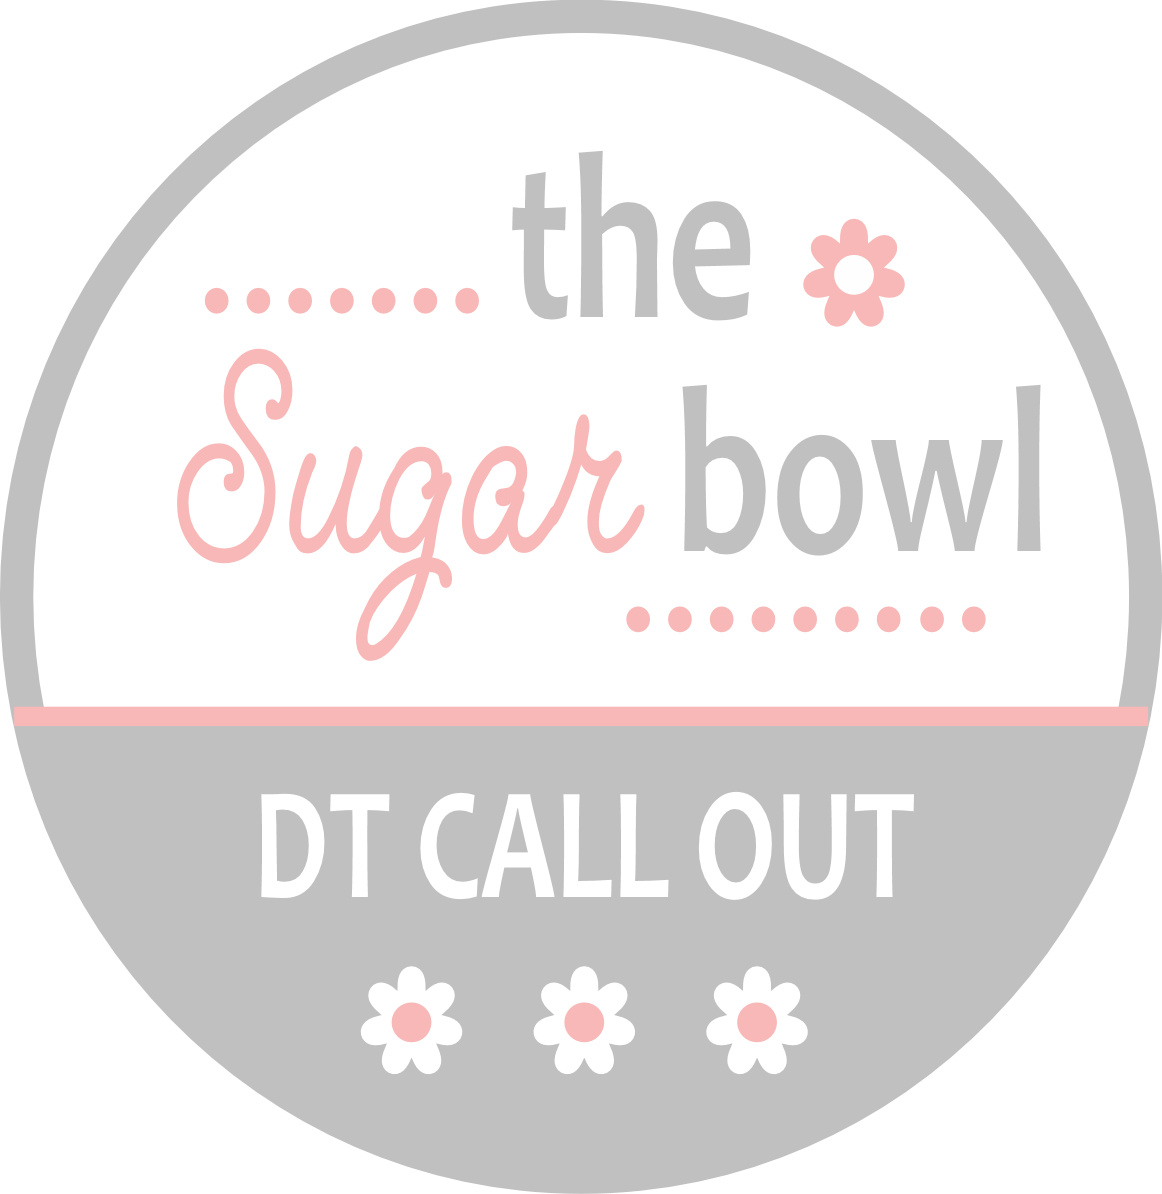 http://sugarbowlblog.blogspot.co.uk/2015/03/dt-call.html